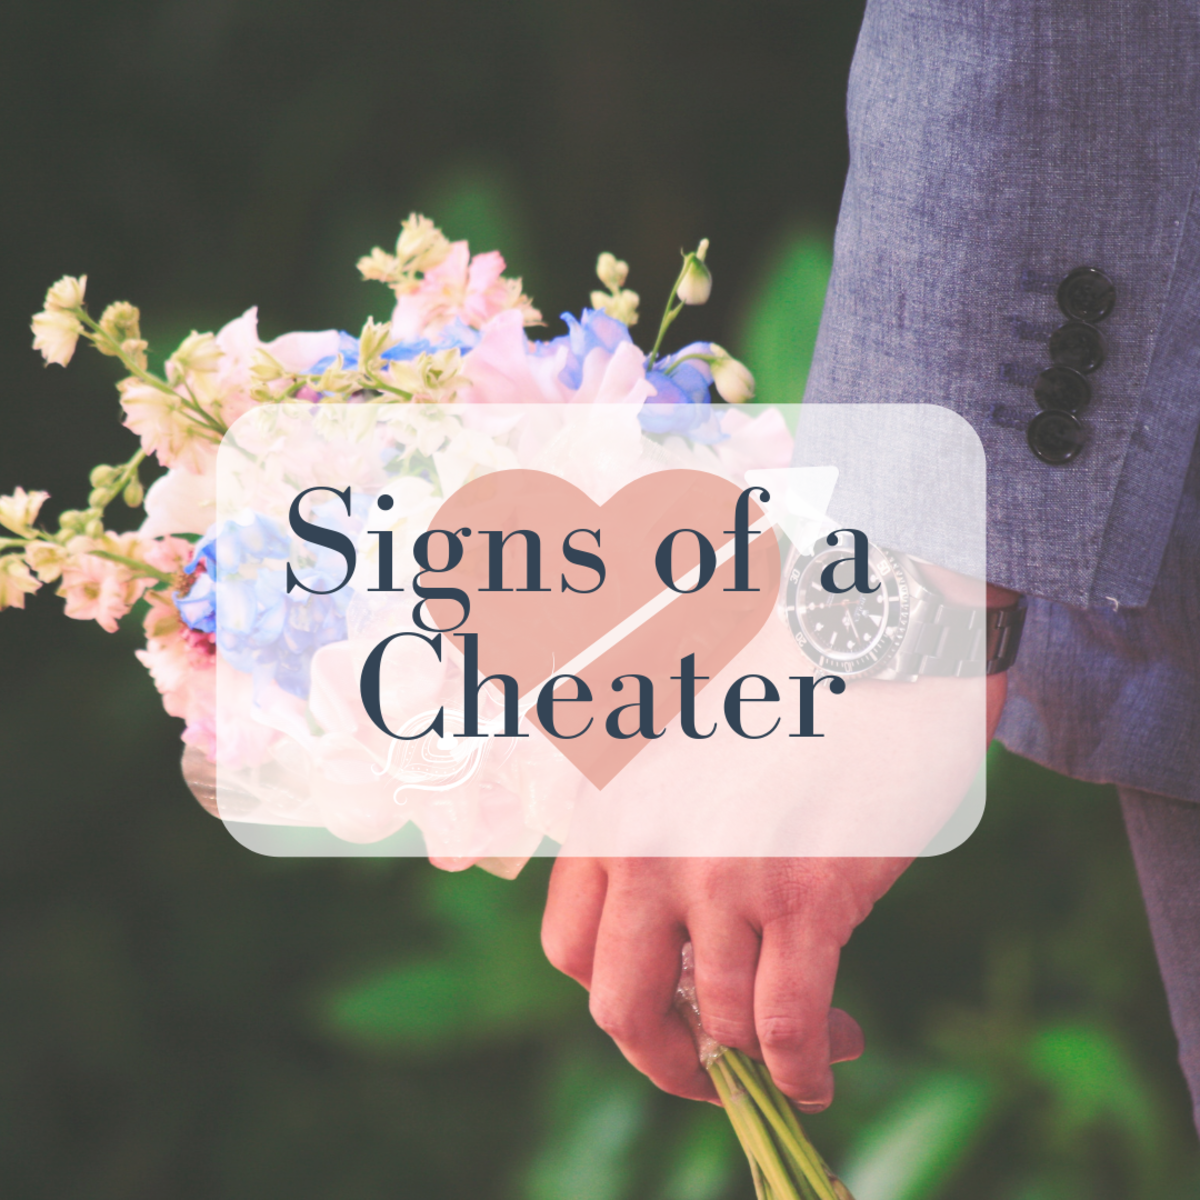 10 Common Personality Traits of a Cheater